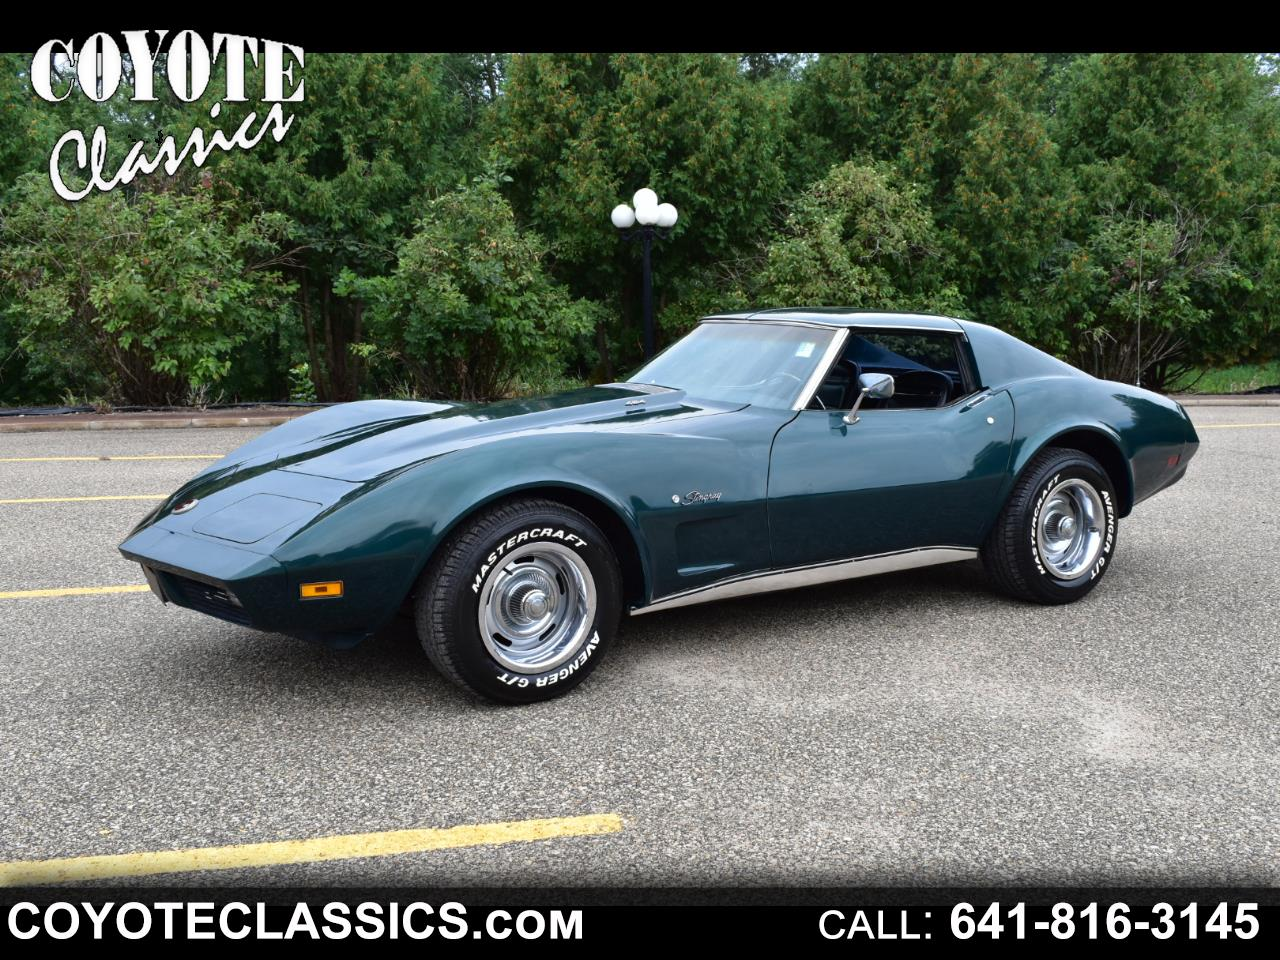 1974 Chevrolet Corvette 1LT Coupe Automatic